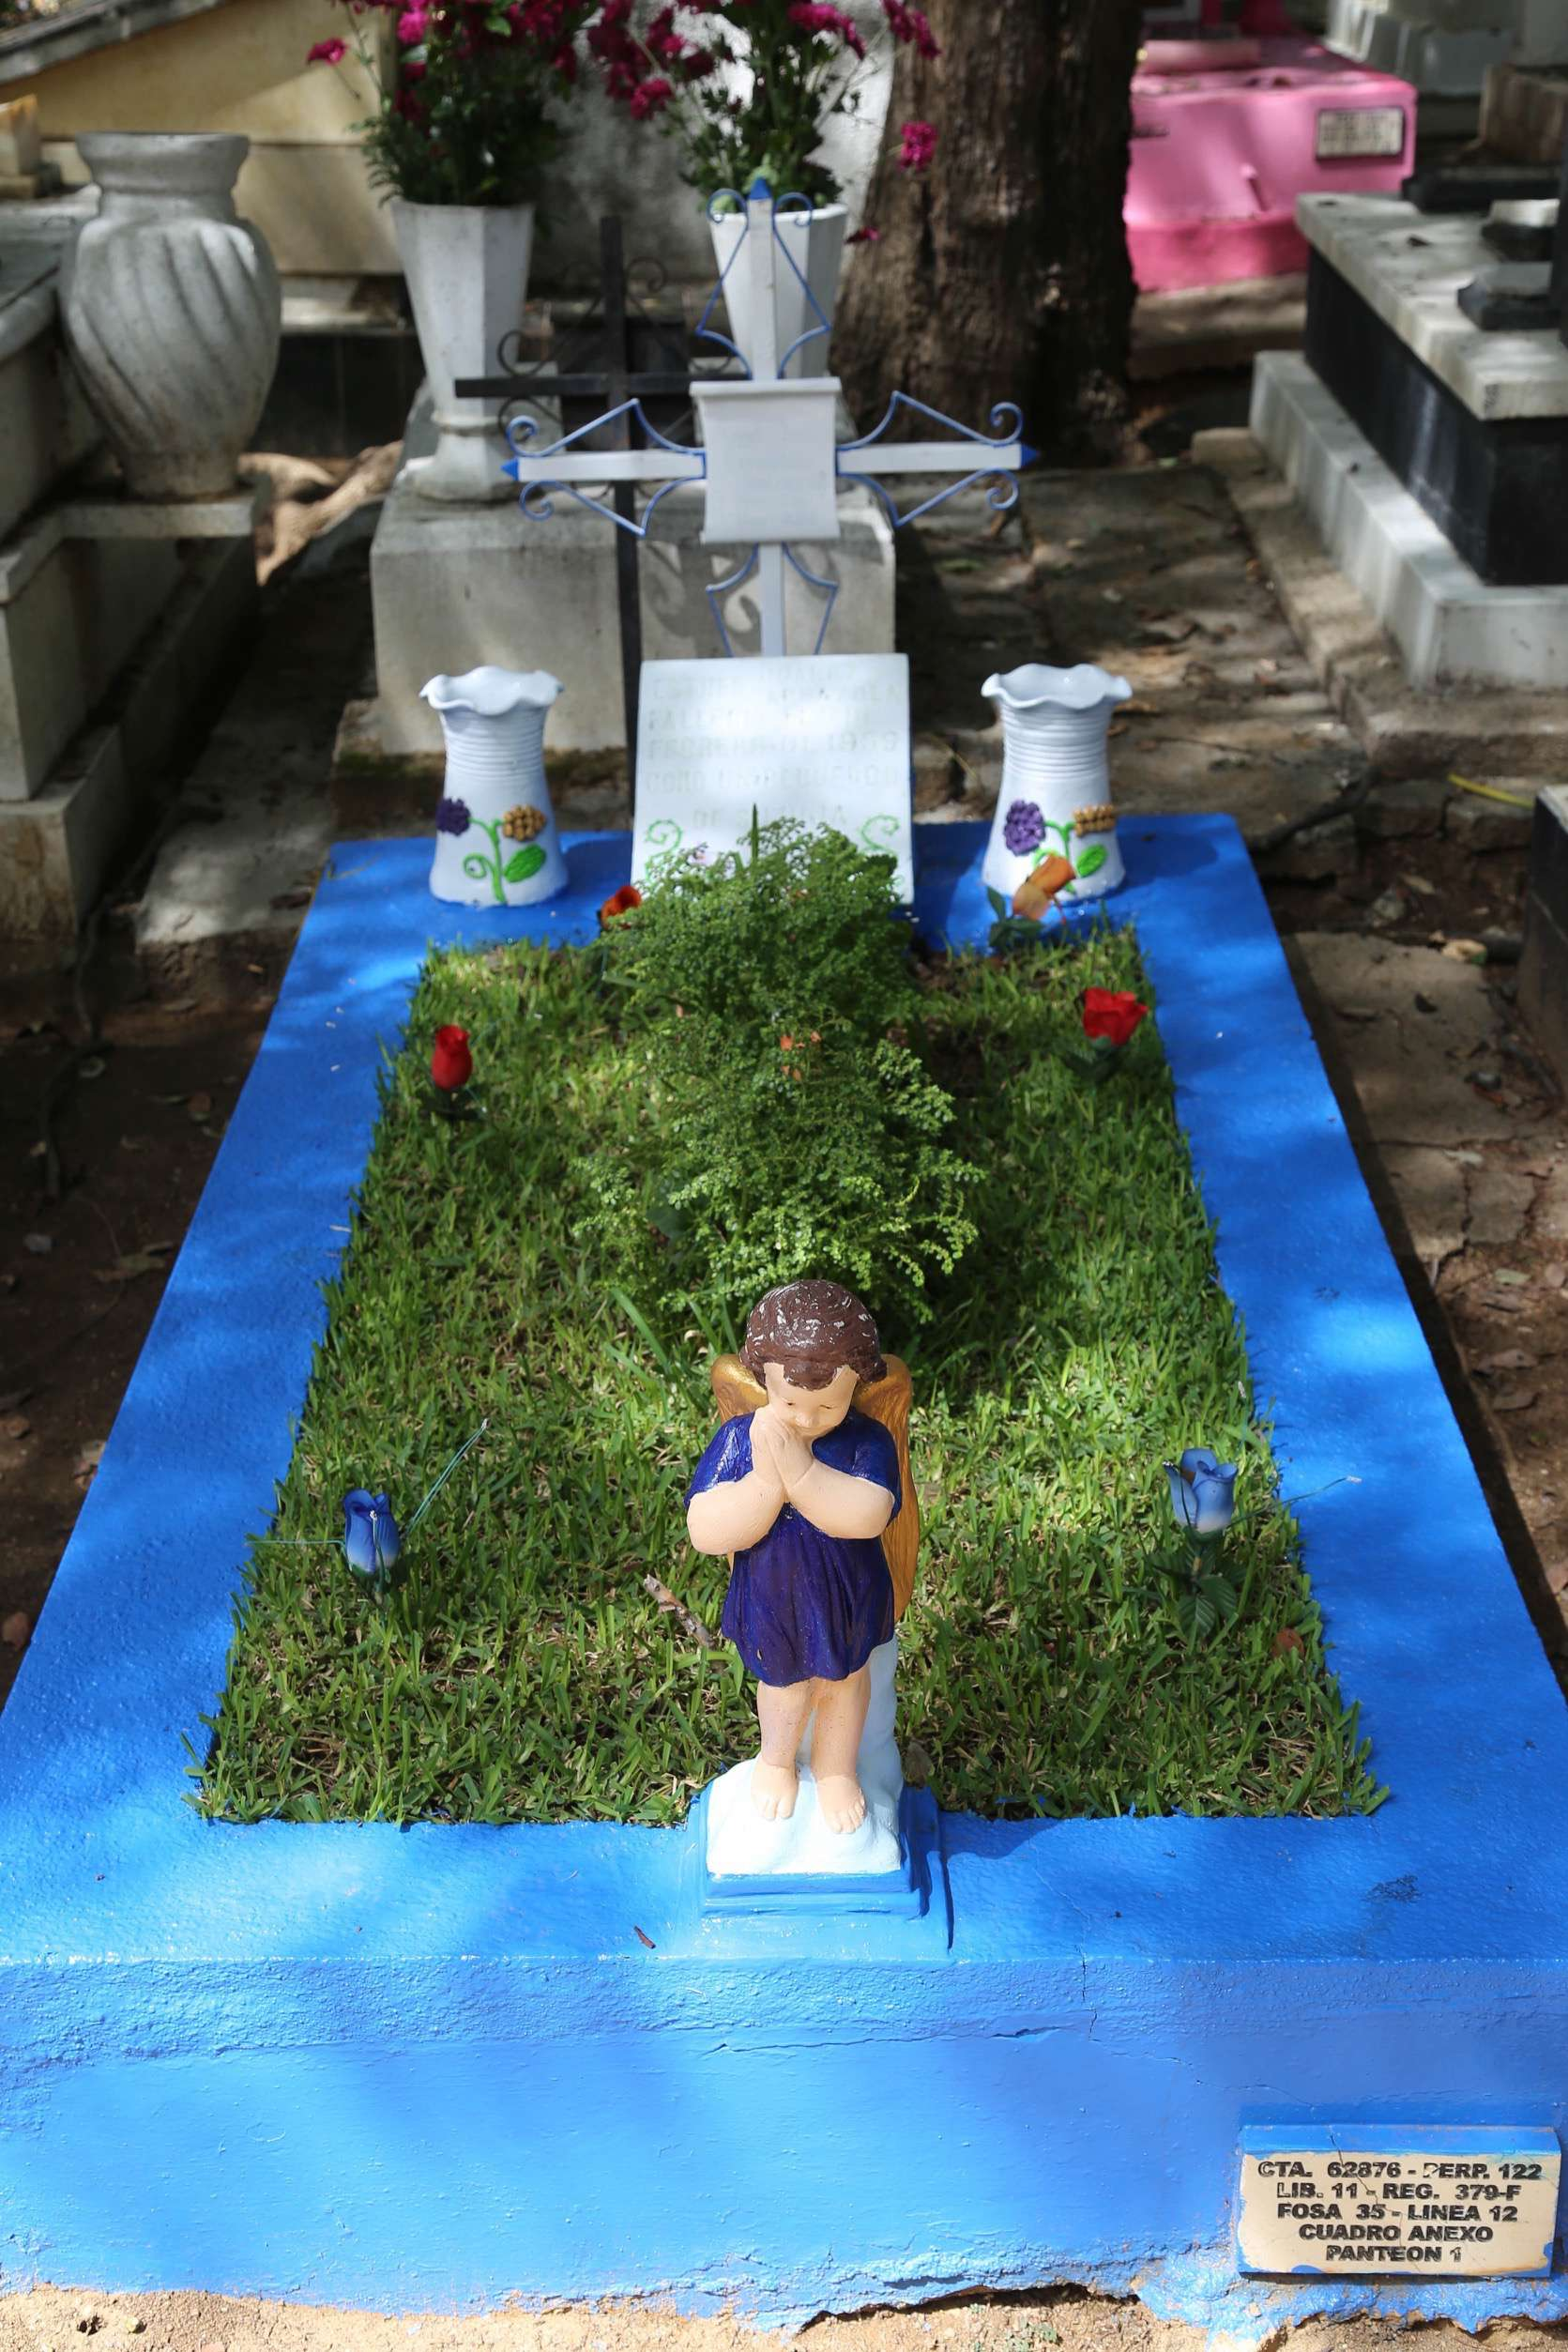 This modest grave in Oaxaca city's Panteon General Cemetery has recently been cleaned up and fresh paint adds color.